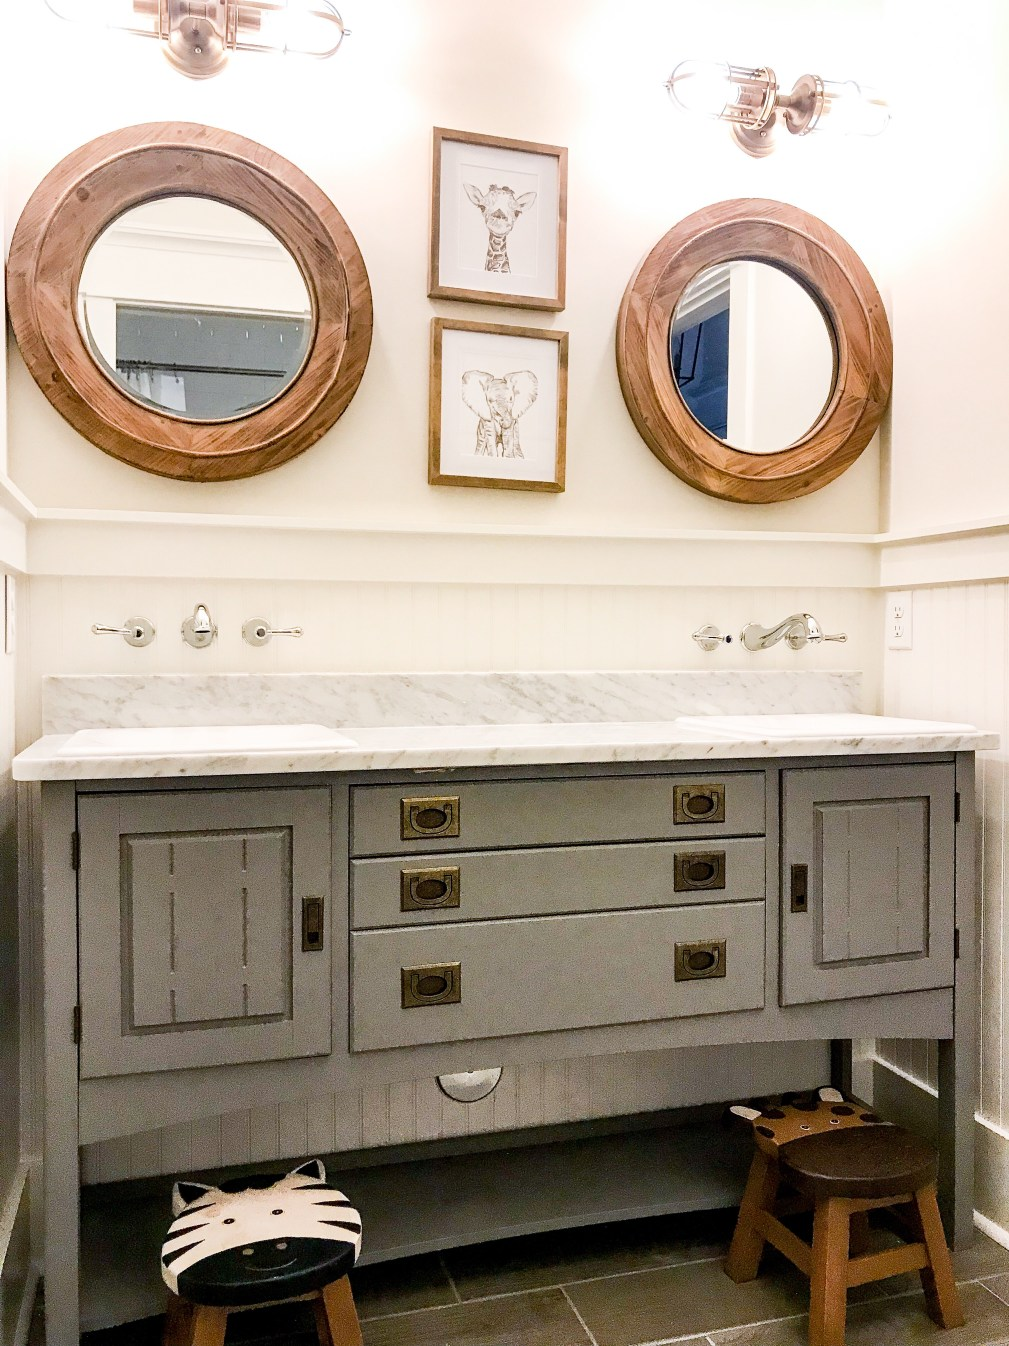 kids-bathroom-painted-vanity